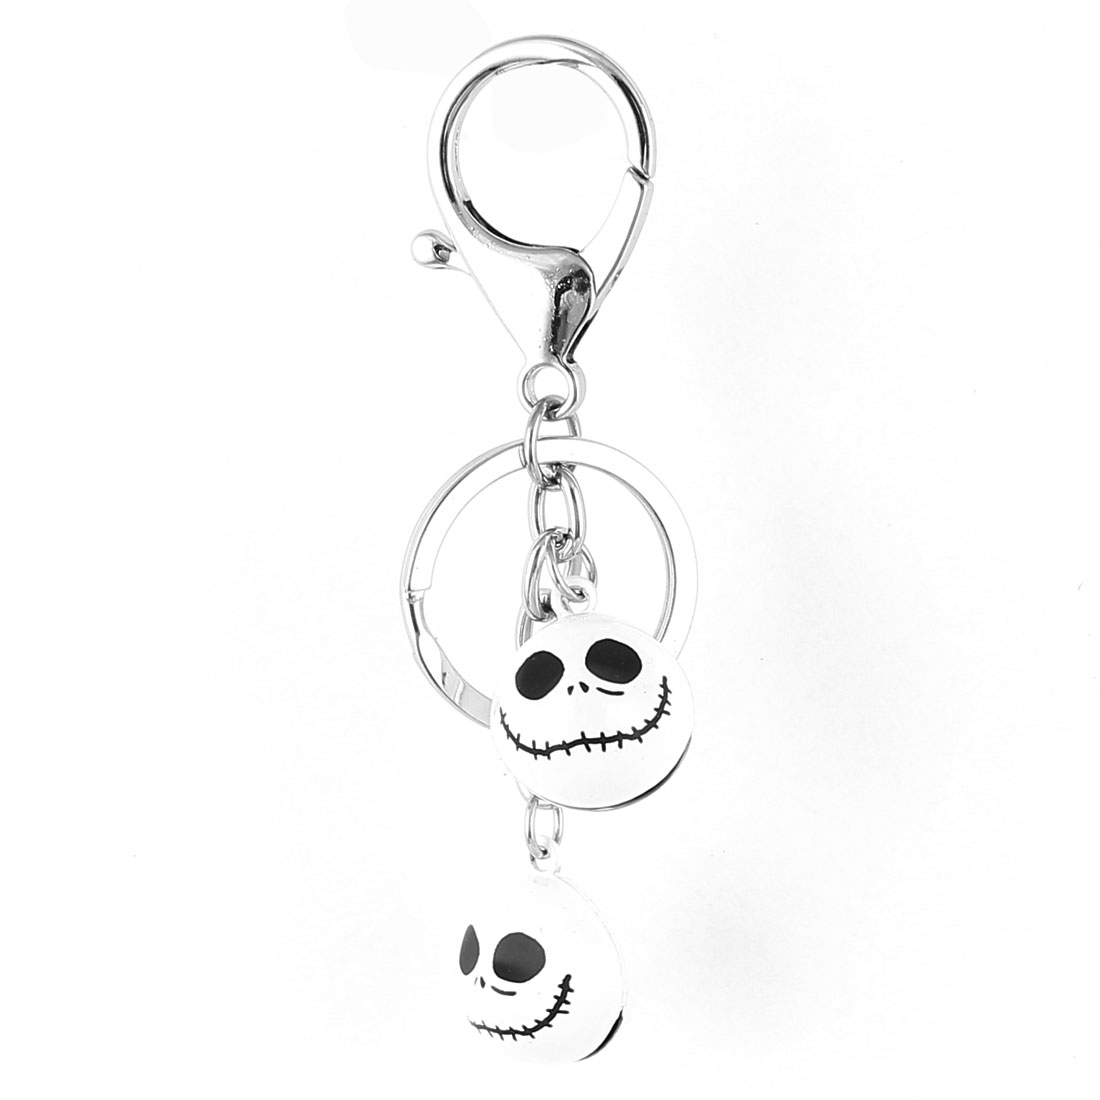 White Double Dangling Bells Decor Key Ring Keychain Keyring 10cm